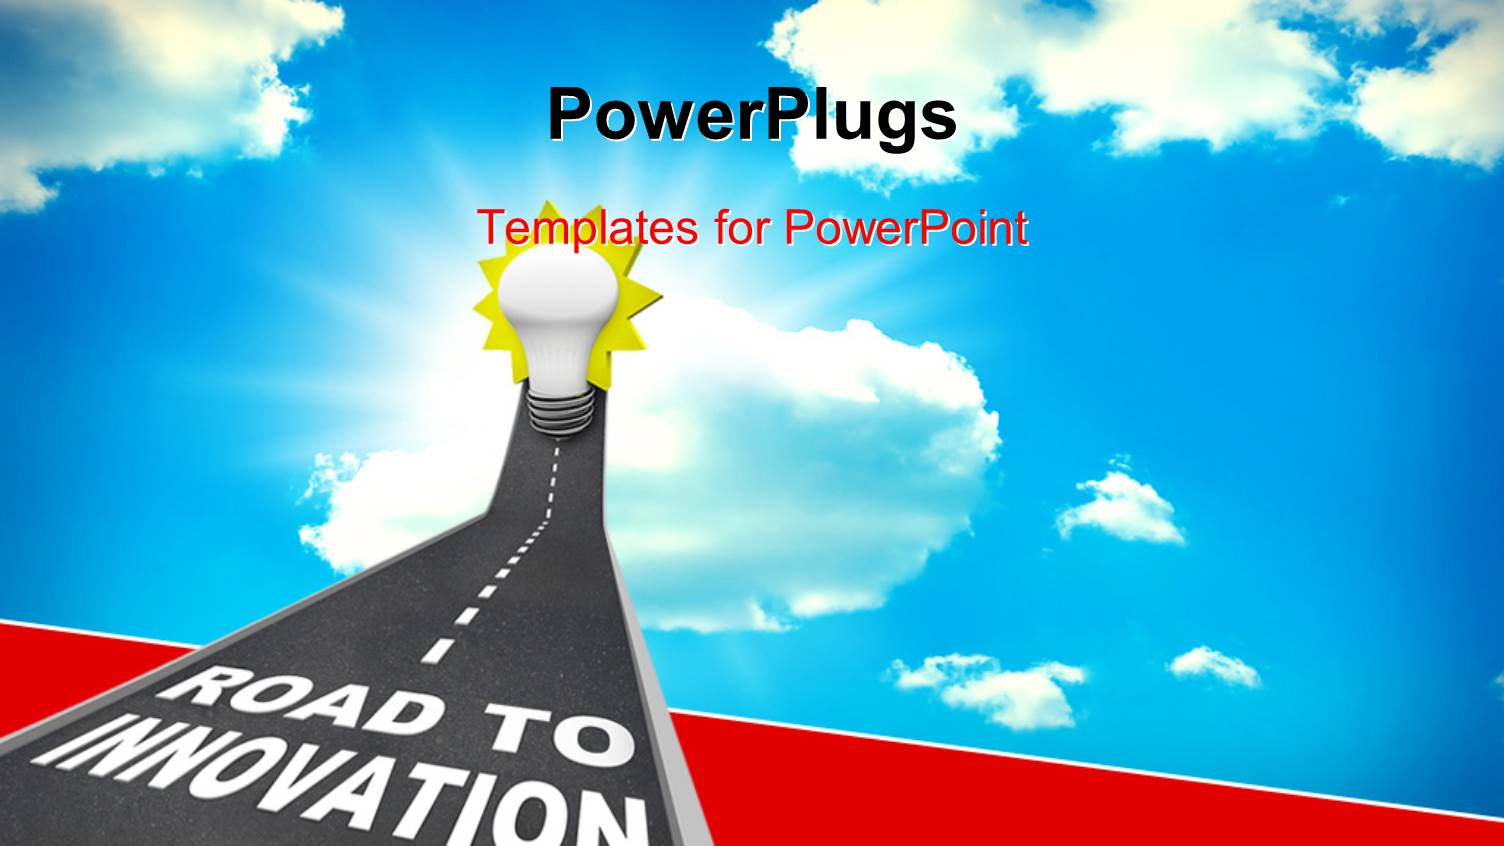 Powerpoint template road to innovation leading upward to a light powerpoint template displaying road to innovation leading upward to a light bulb representing imagination creativity toneelgroepblik Image collections